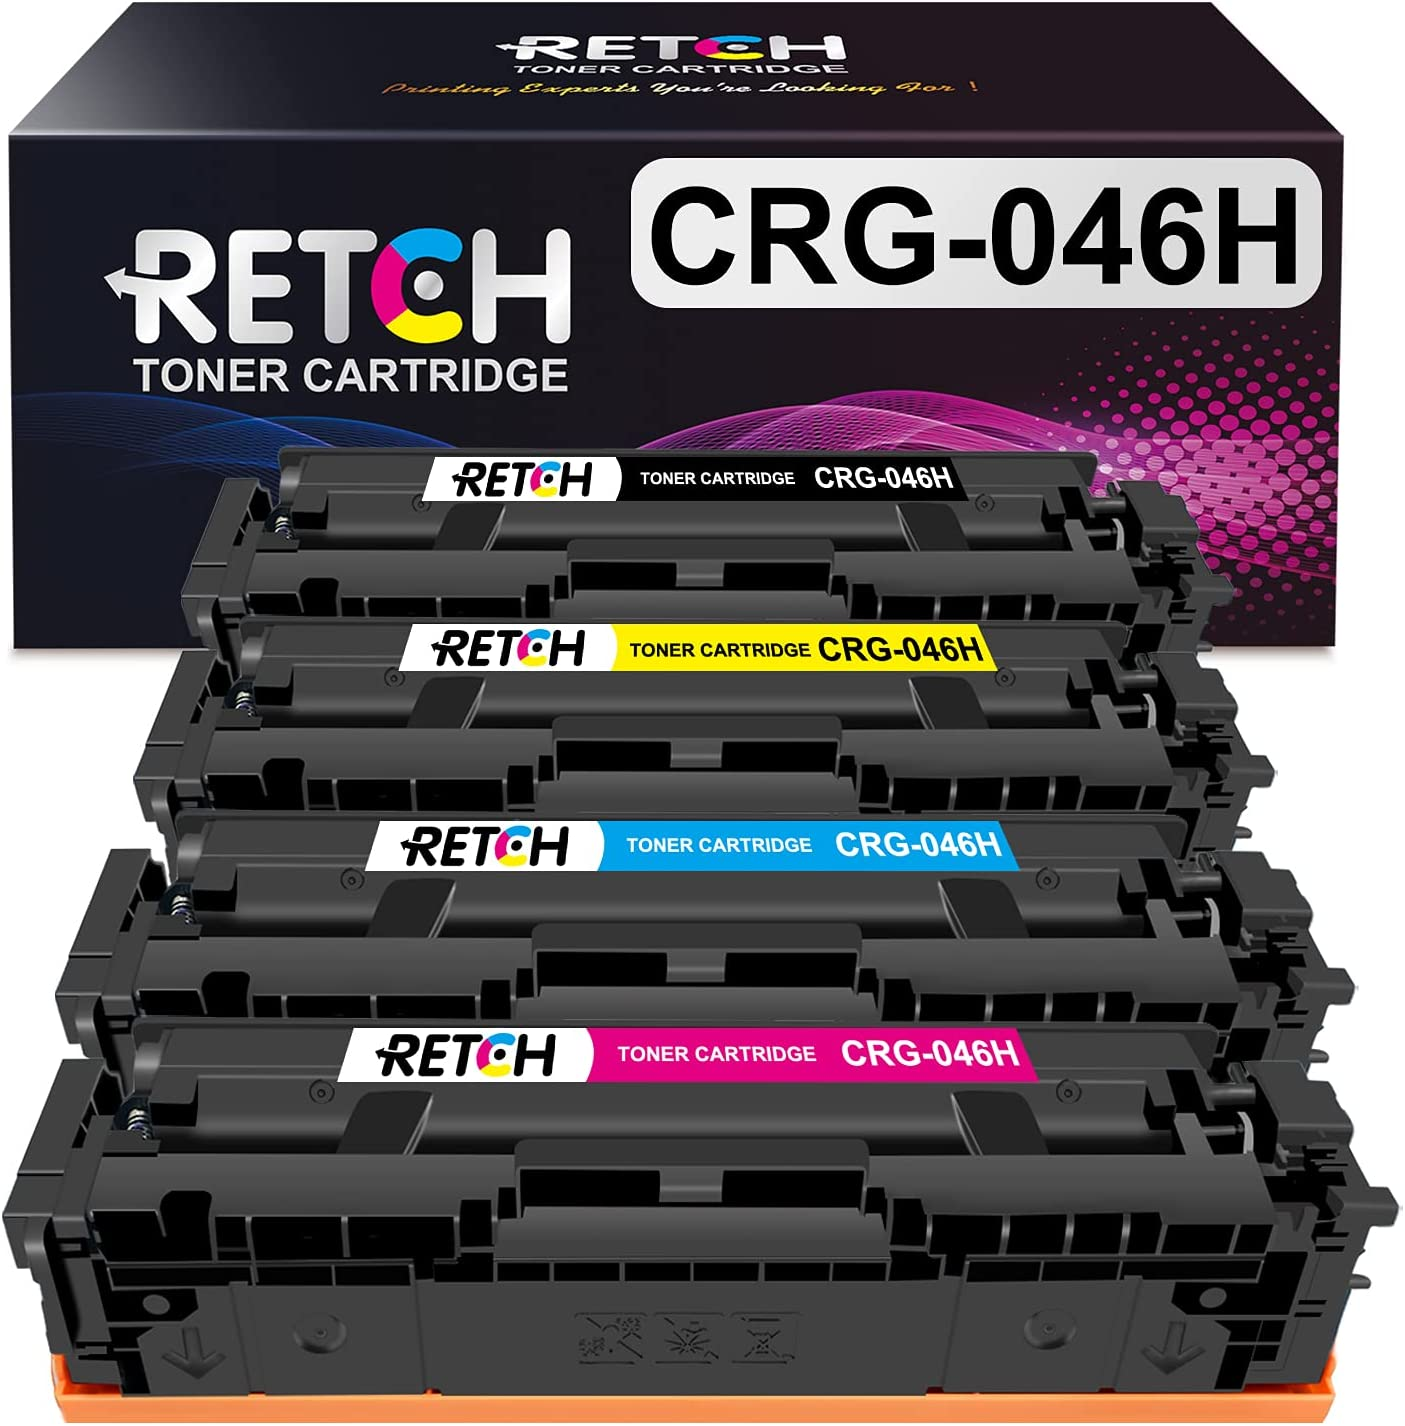 RETCH Compatible Toner Cartridges 046H Tray Replacement for Canon 046 CRG-046 046H for Canon ImageClass MF733Cdw MF731Cdw MF735Cdw LBP654Cdw MF733 MF731 Printer (Black, Cyan, Magenta, Yellow)